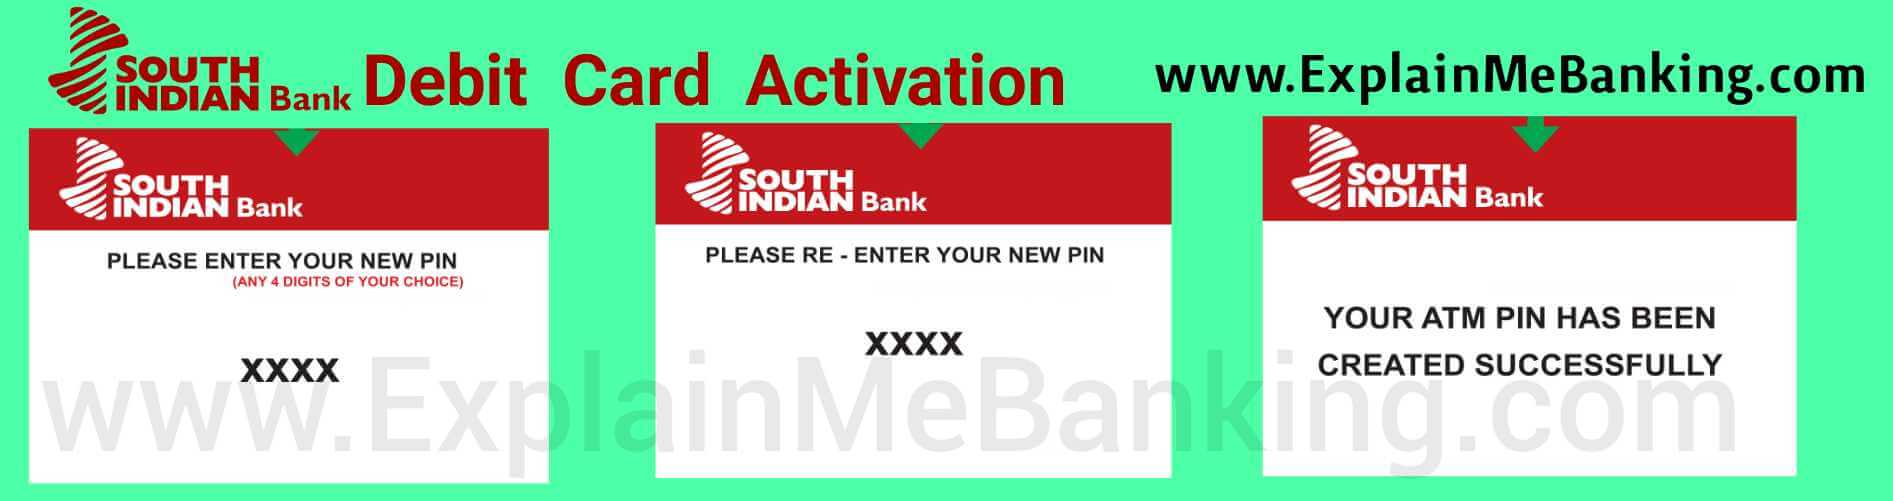 South Indian Bank Debit Card Activation